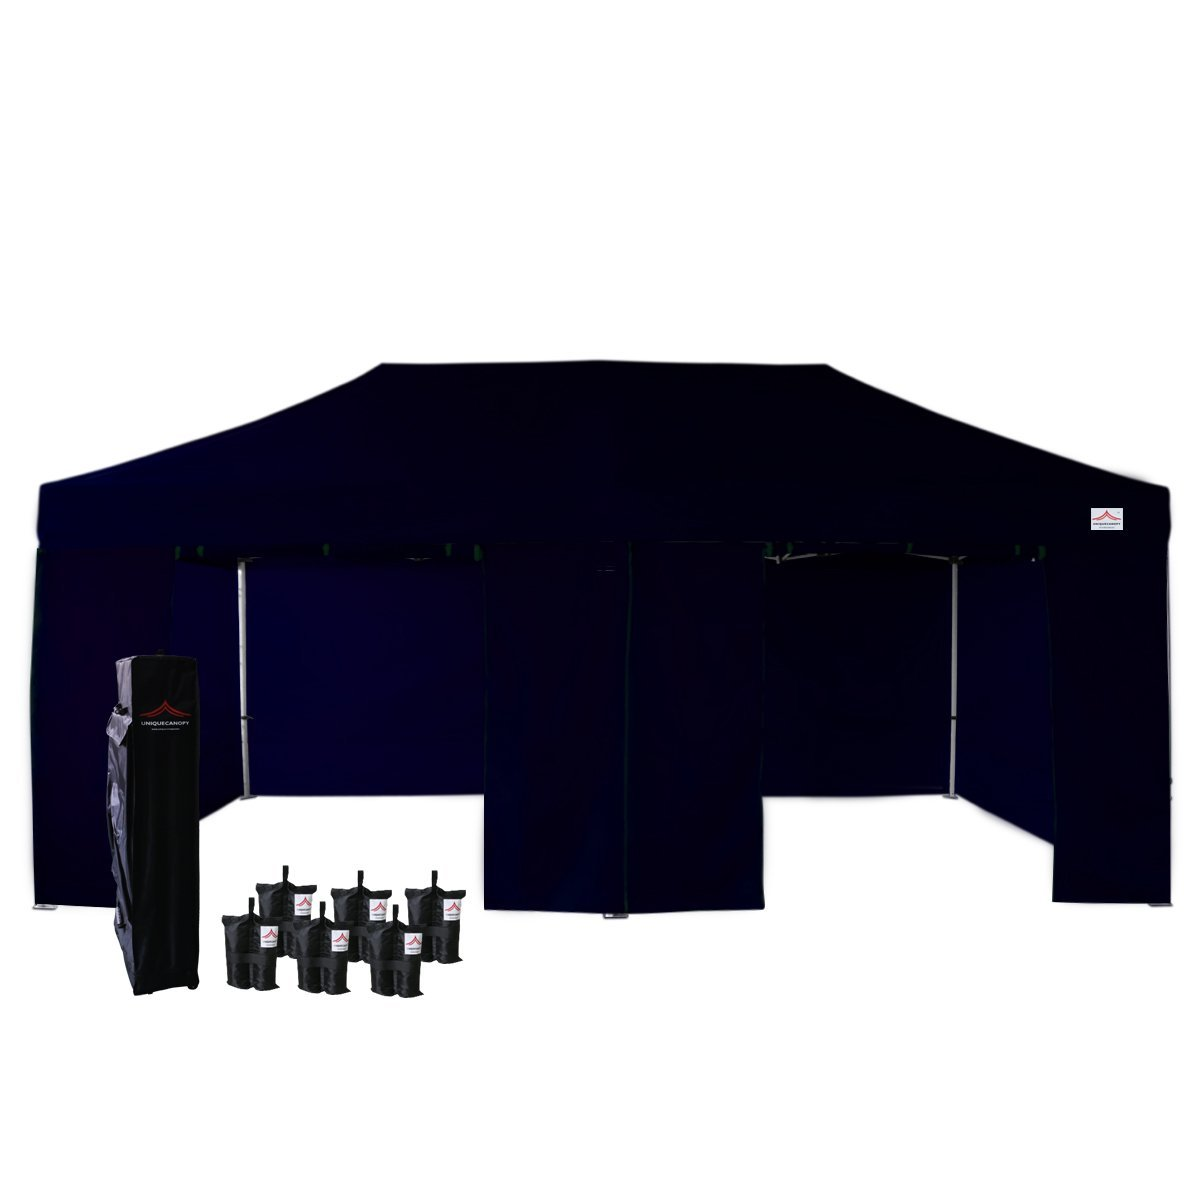 UNIQUECANOPY Enhanced 10x20 Ez Pop up Canopy Instant Tent Outdoor Gazebo Party Portable Wedding Party Show Tent with 6 sandy bags and 4 Zippered Side Walls and Wheeled Carrying Bag Navy Blue